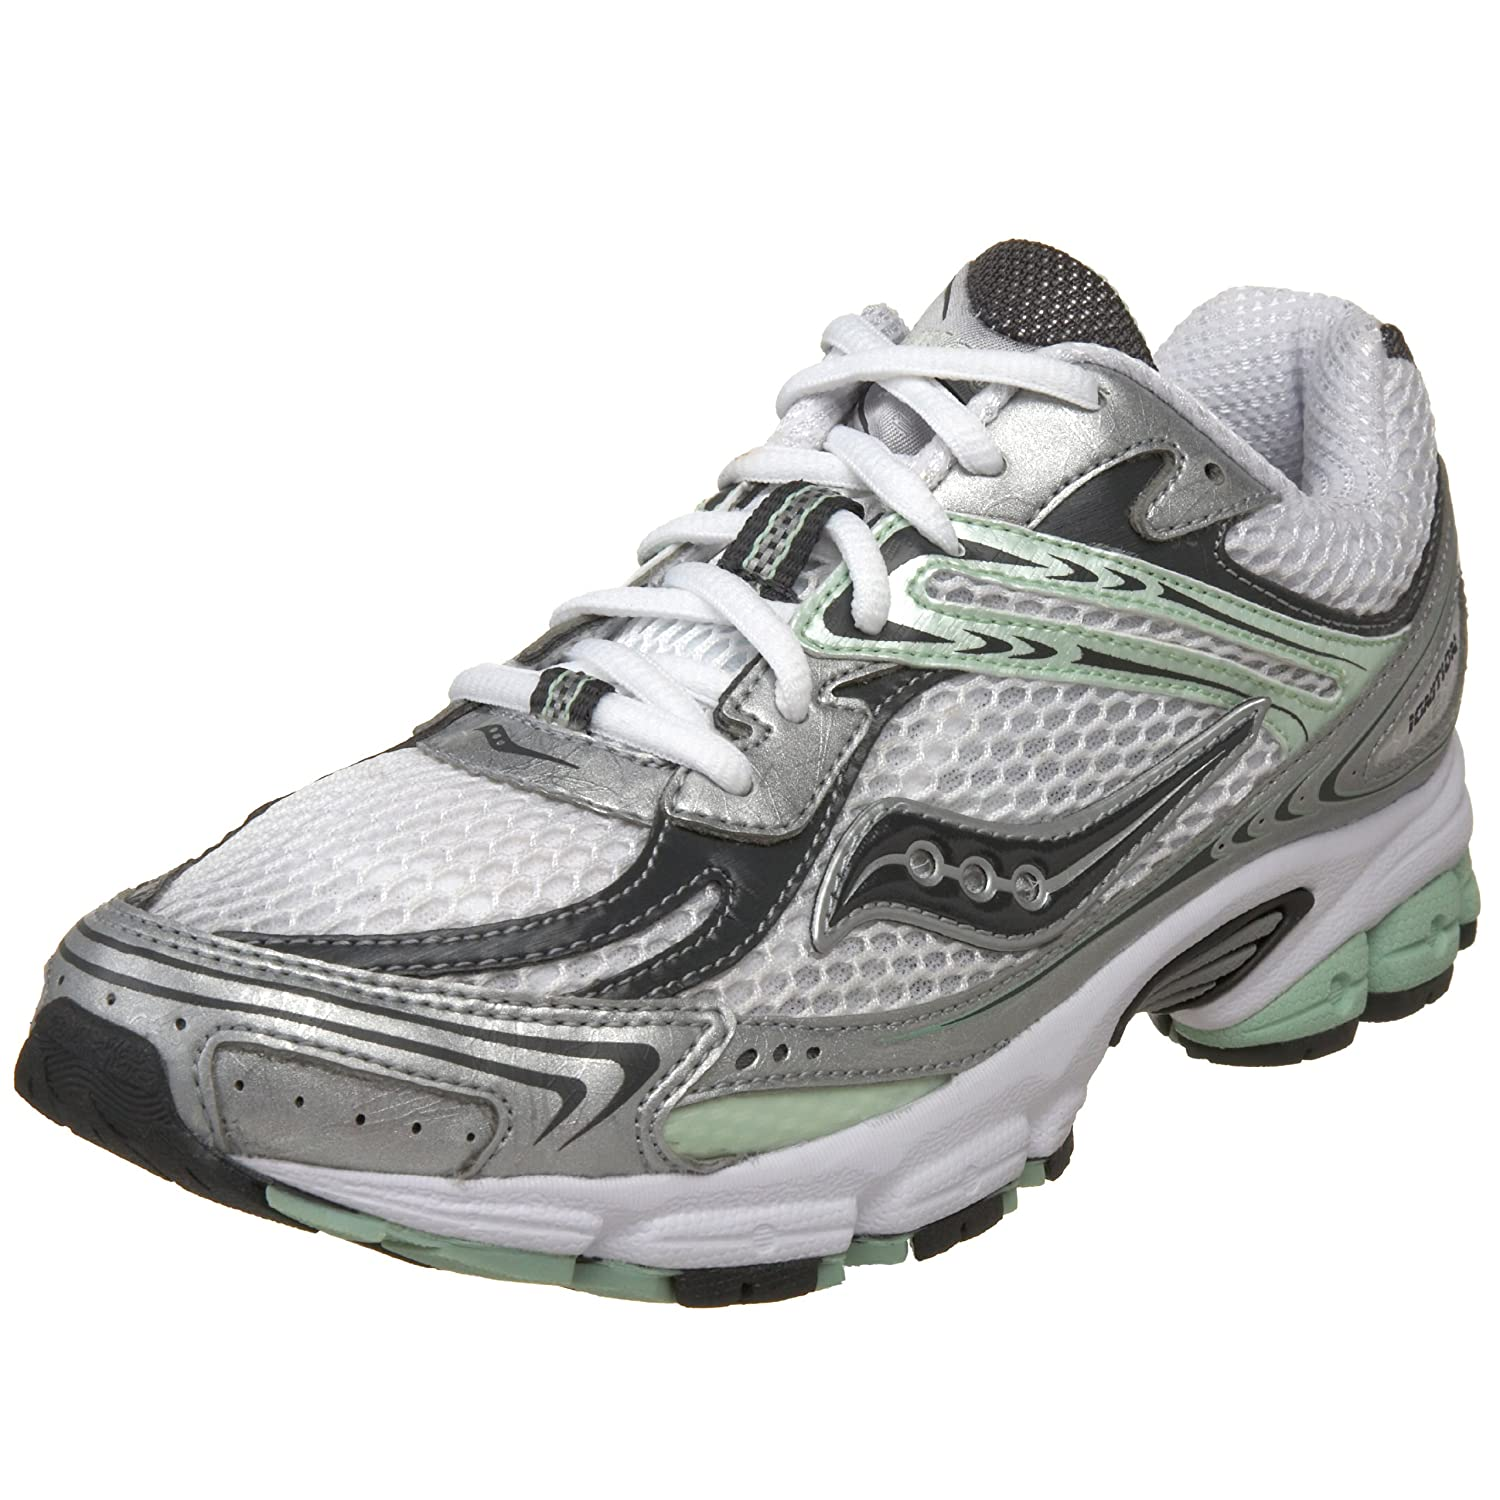 Grey Saucony Grid Ignition 4 Running De los hombres Running Shoes